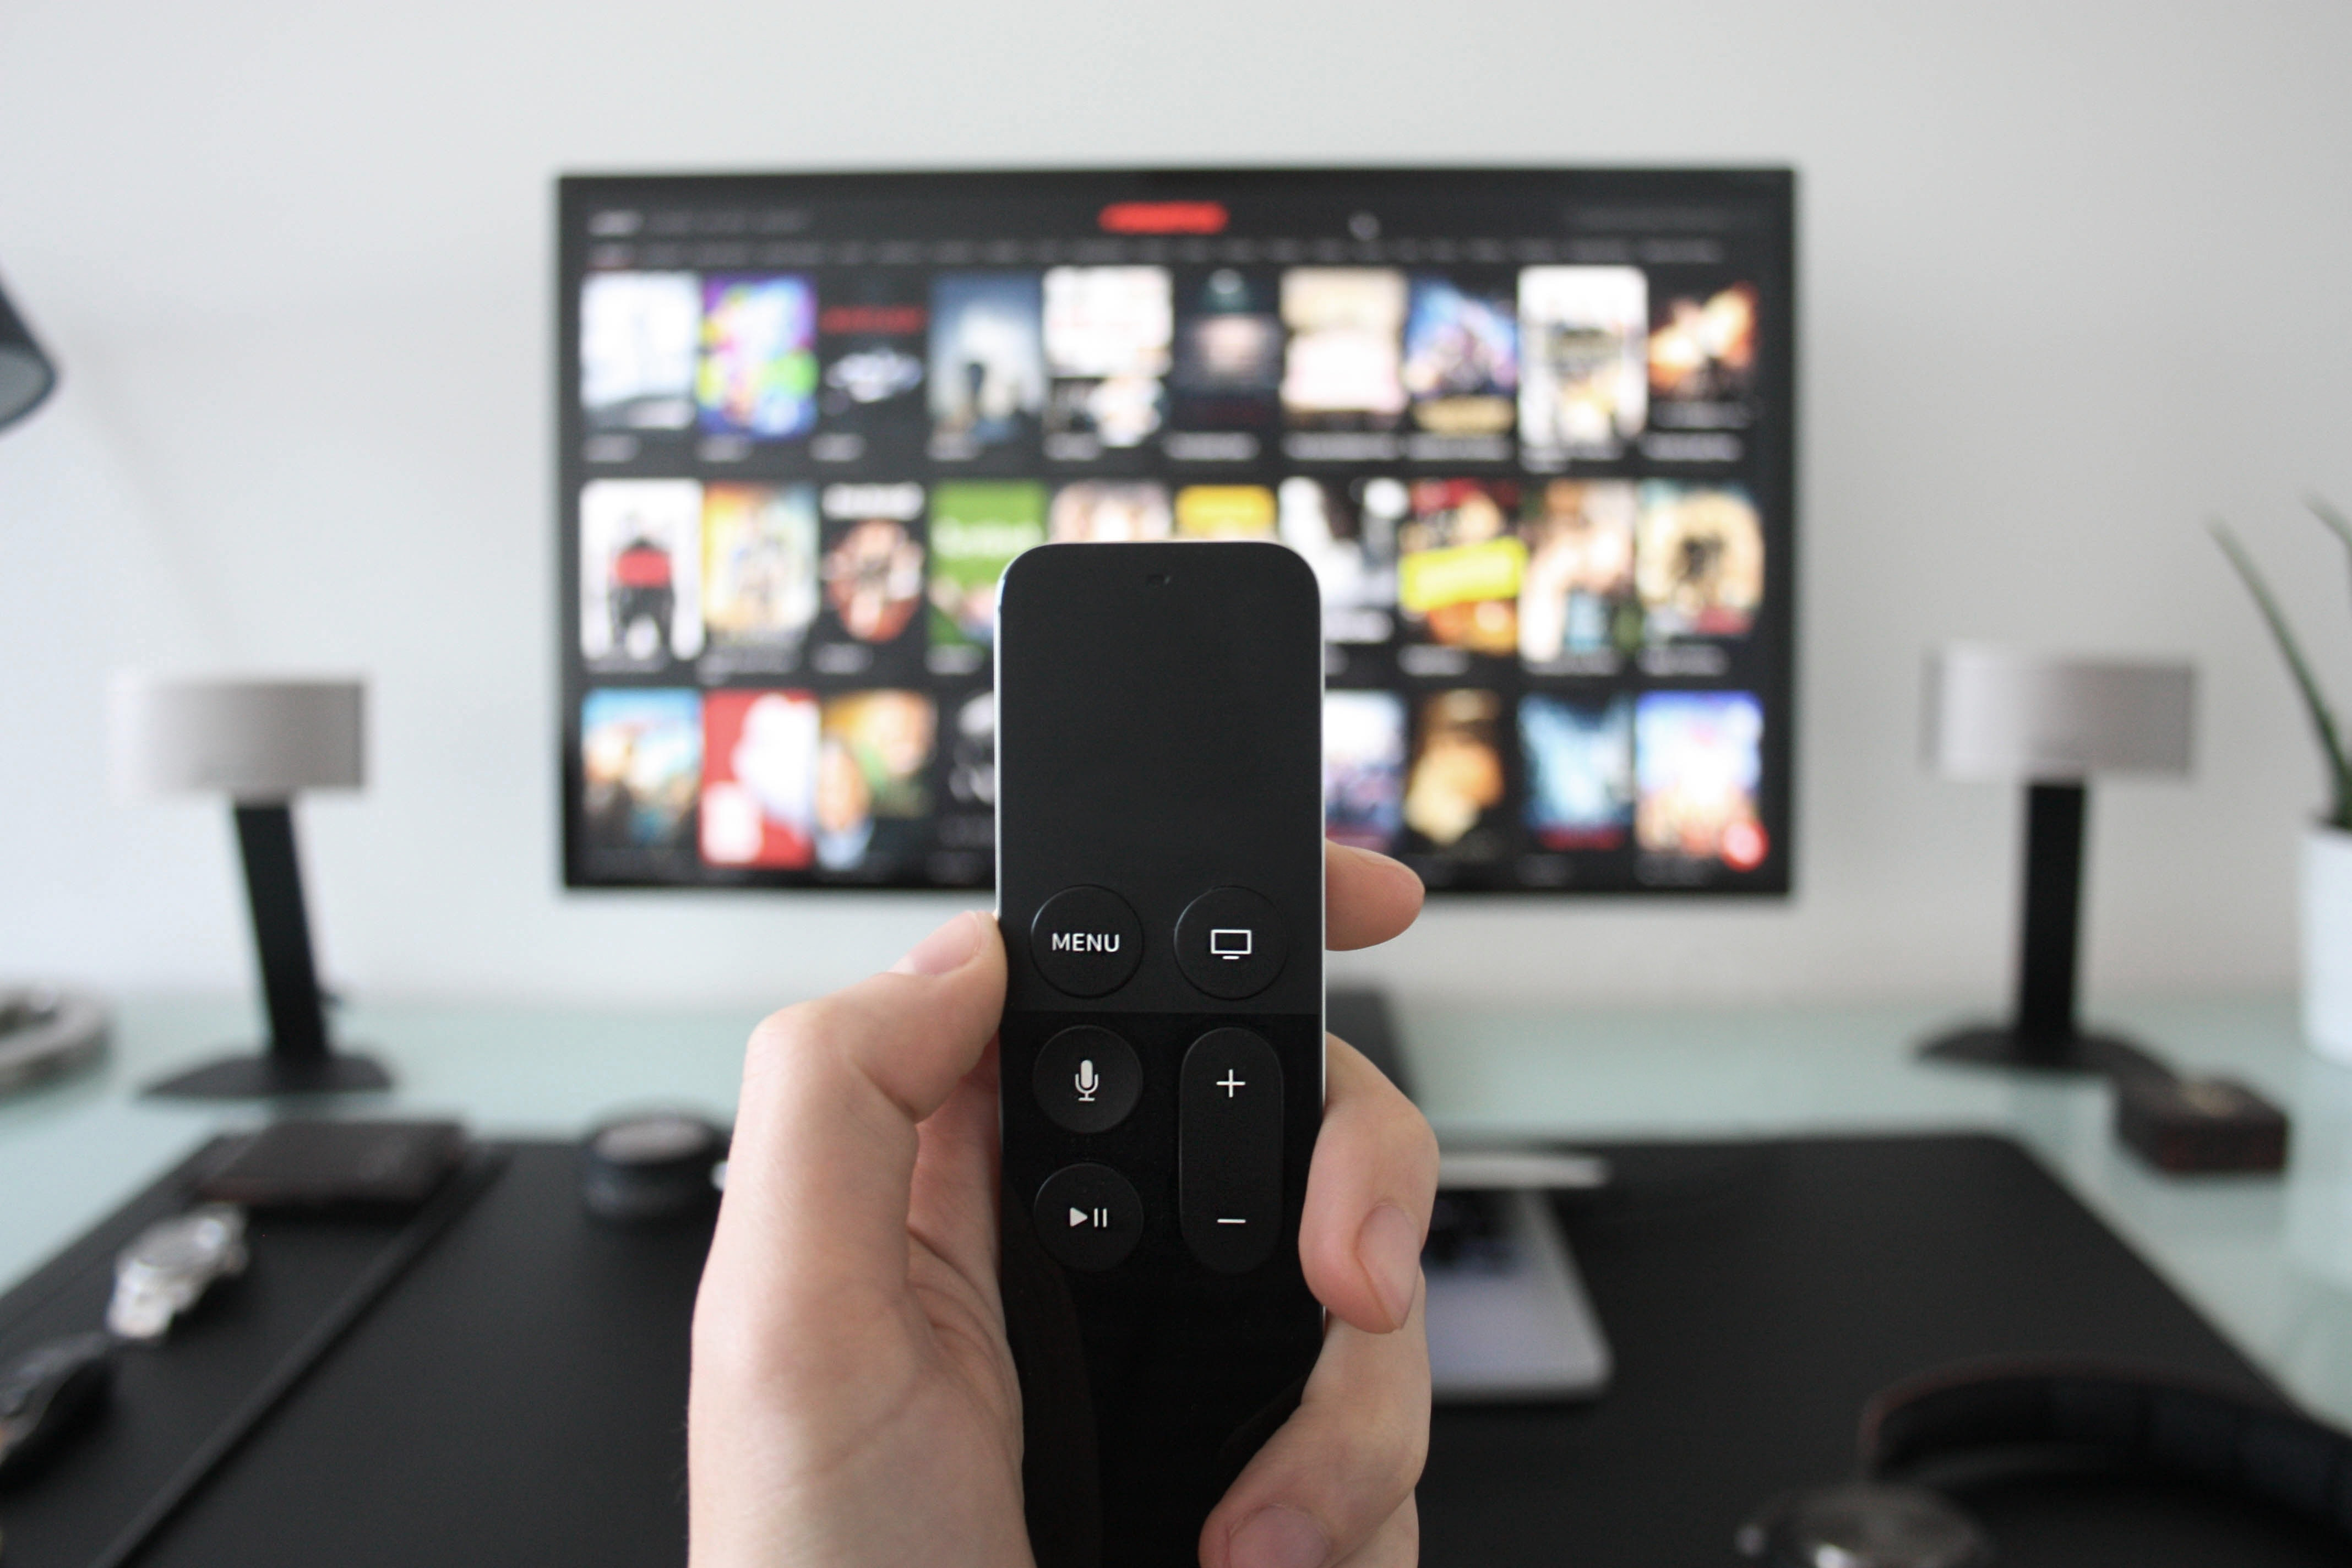 Apple-TV-Fernbedienung